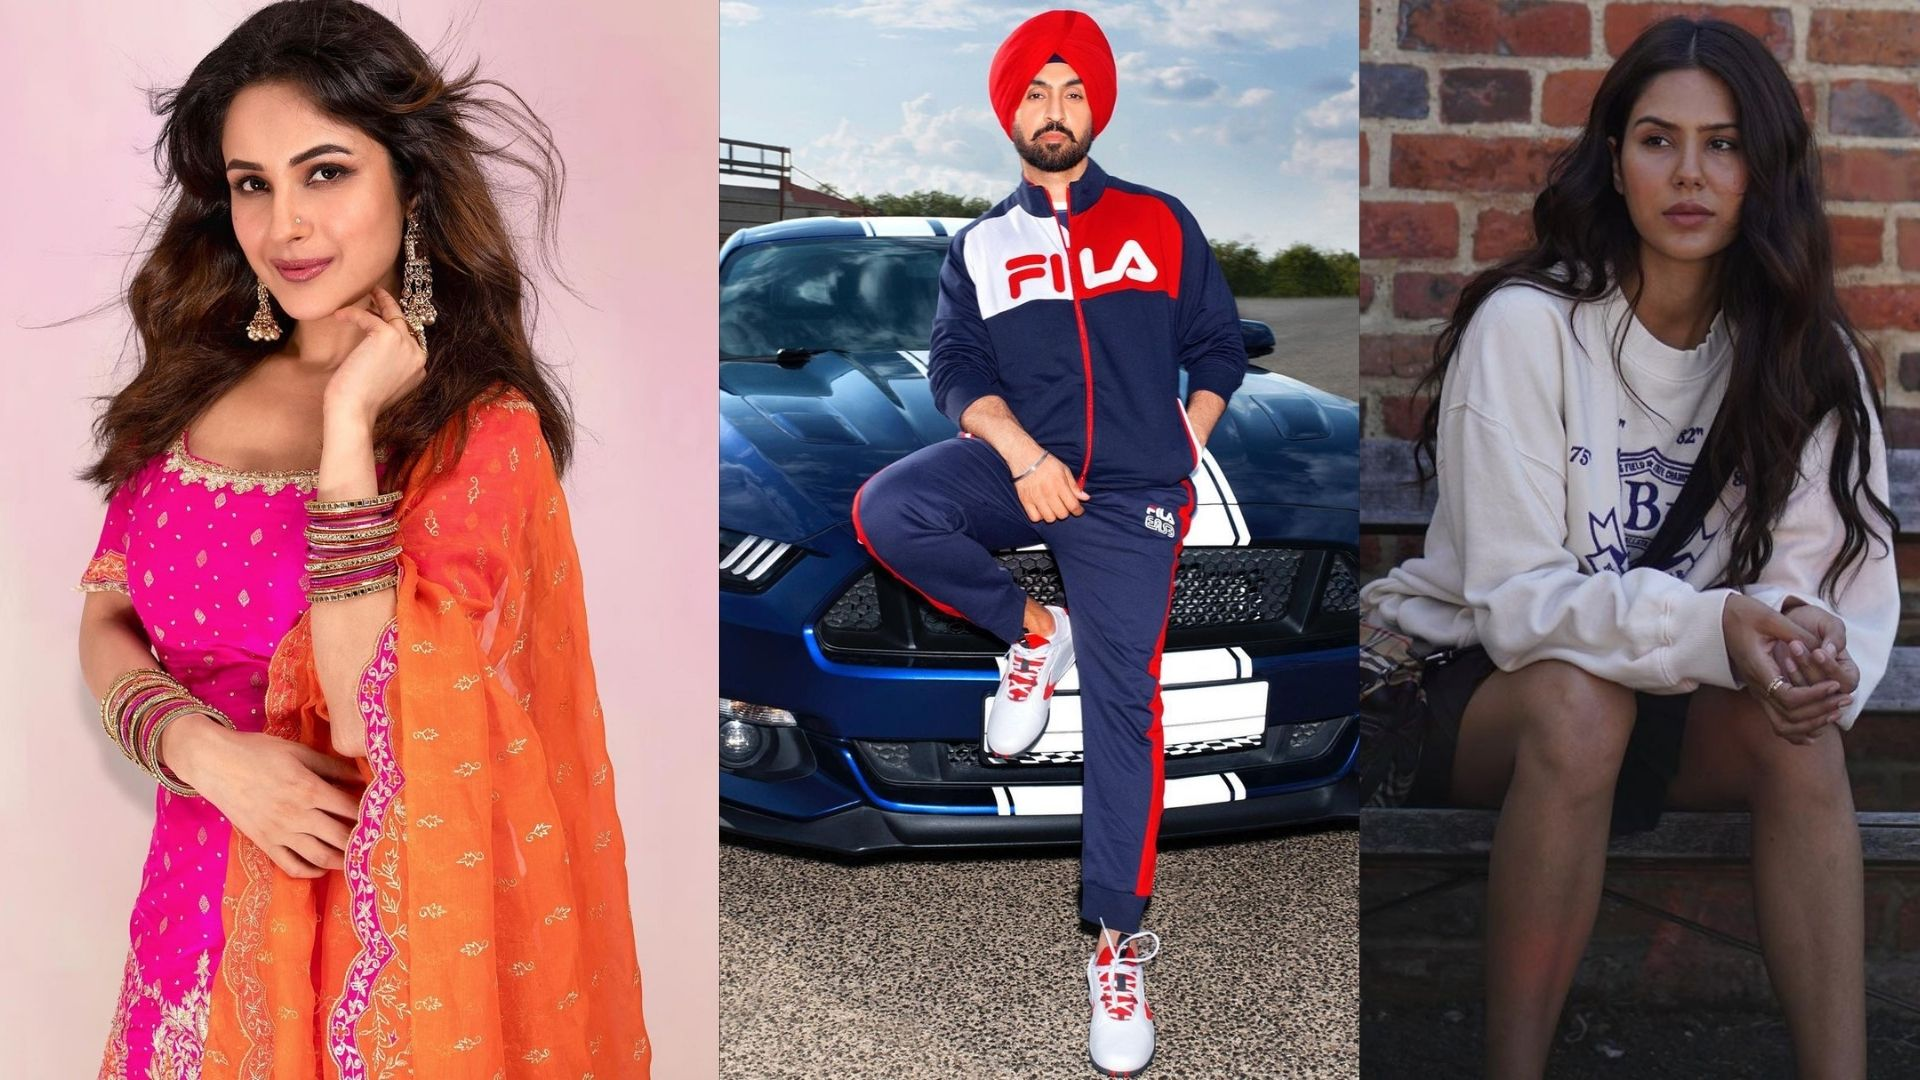 Honsla Rakh Lalkaare Song: Diljit Dosanjh, Shehnaaz Gill, Sonam Bajwa Grooving With Powerful Thumkas Will Make You Get Up From Your Seats And Dance